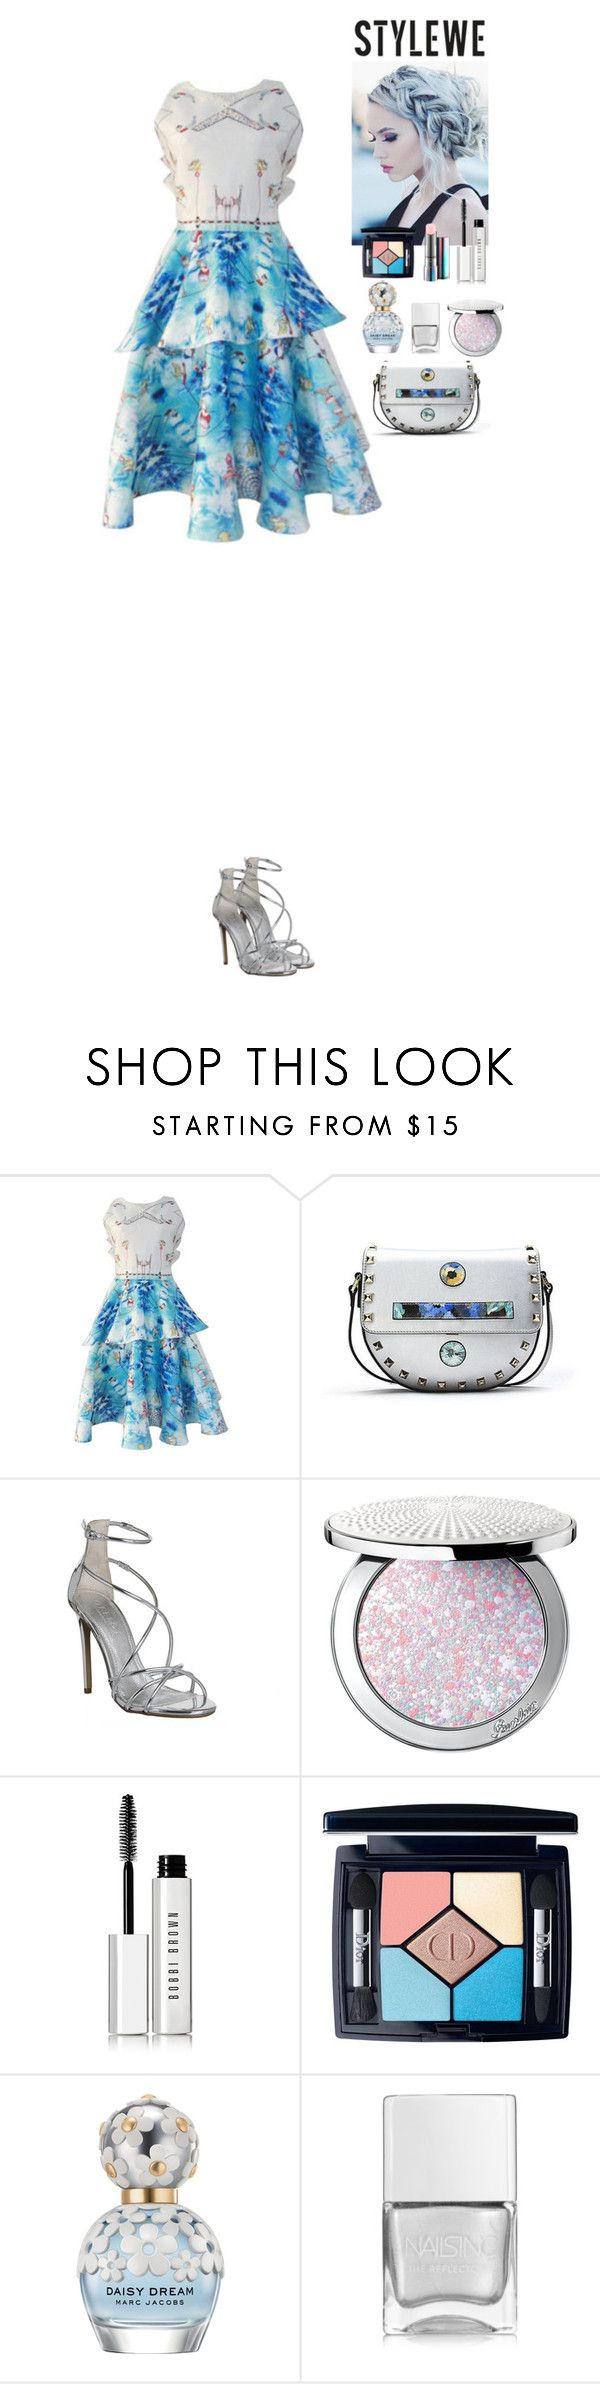 Lovely outfit StyleWe by eliza-redkina on Polyvore featuring мода, Office, Guerlain, Christian Dior, Bobbi Brown Cosmetics, Marc Jacobs, MAC Cosmetics, Nails Inc., outfit and like